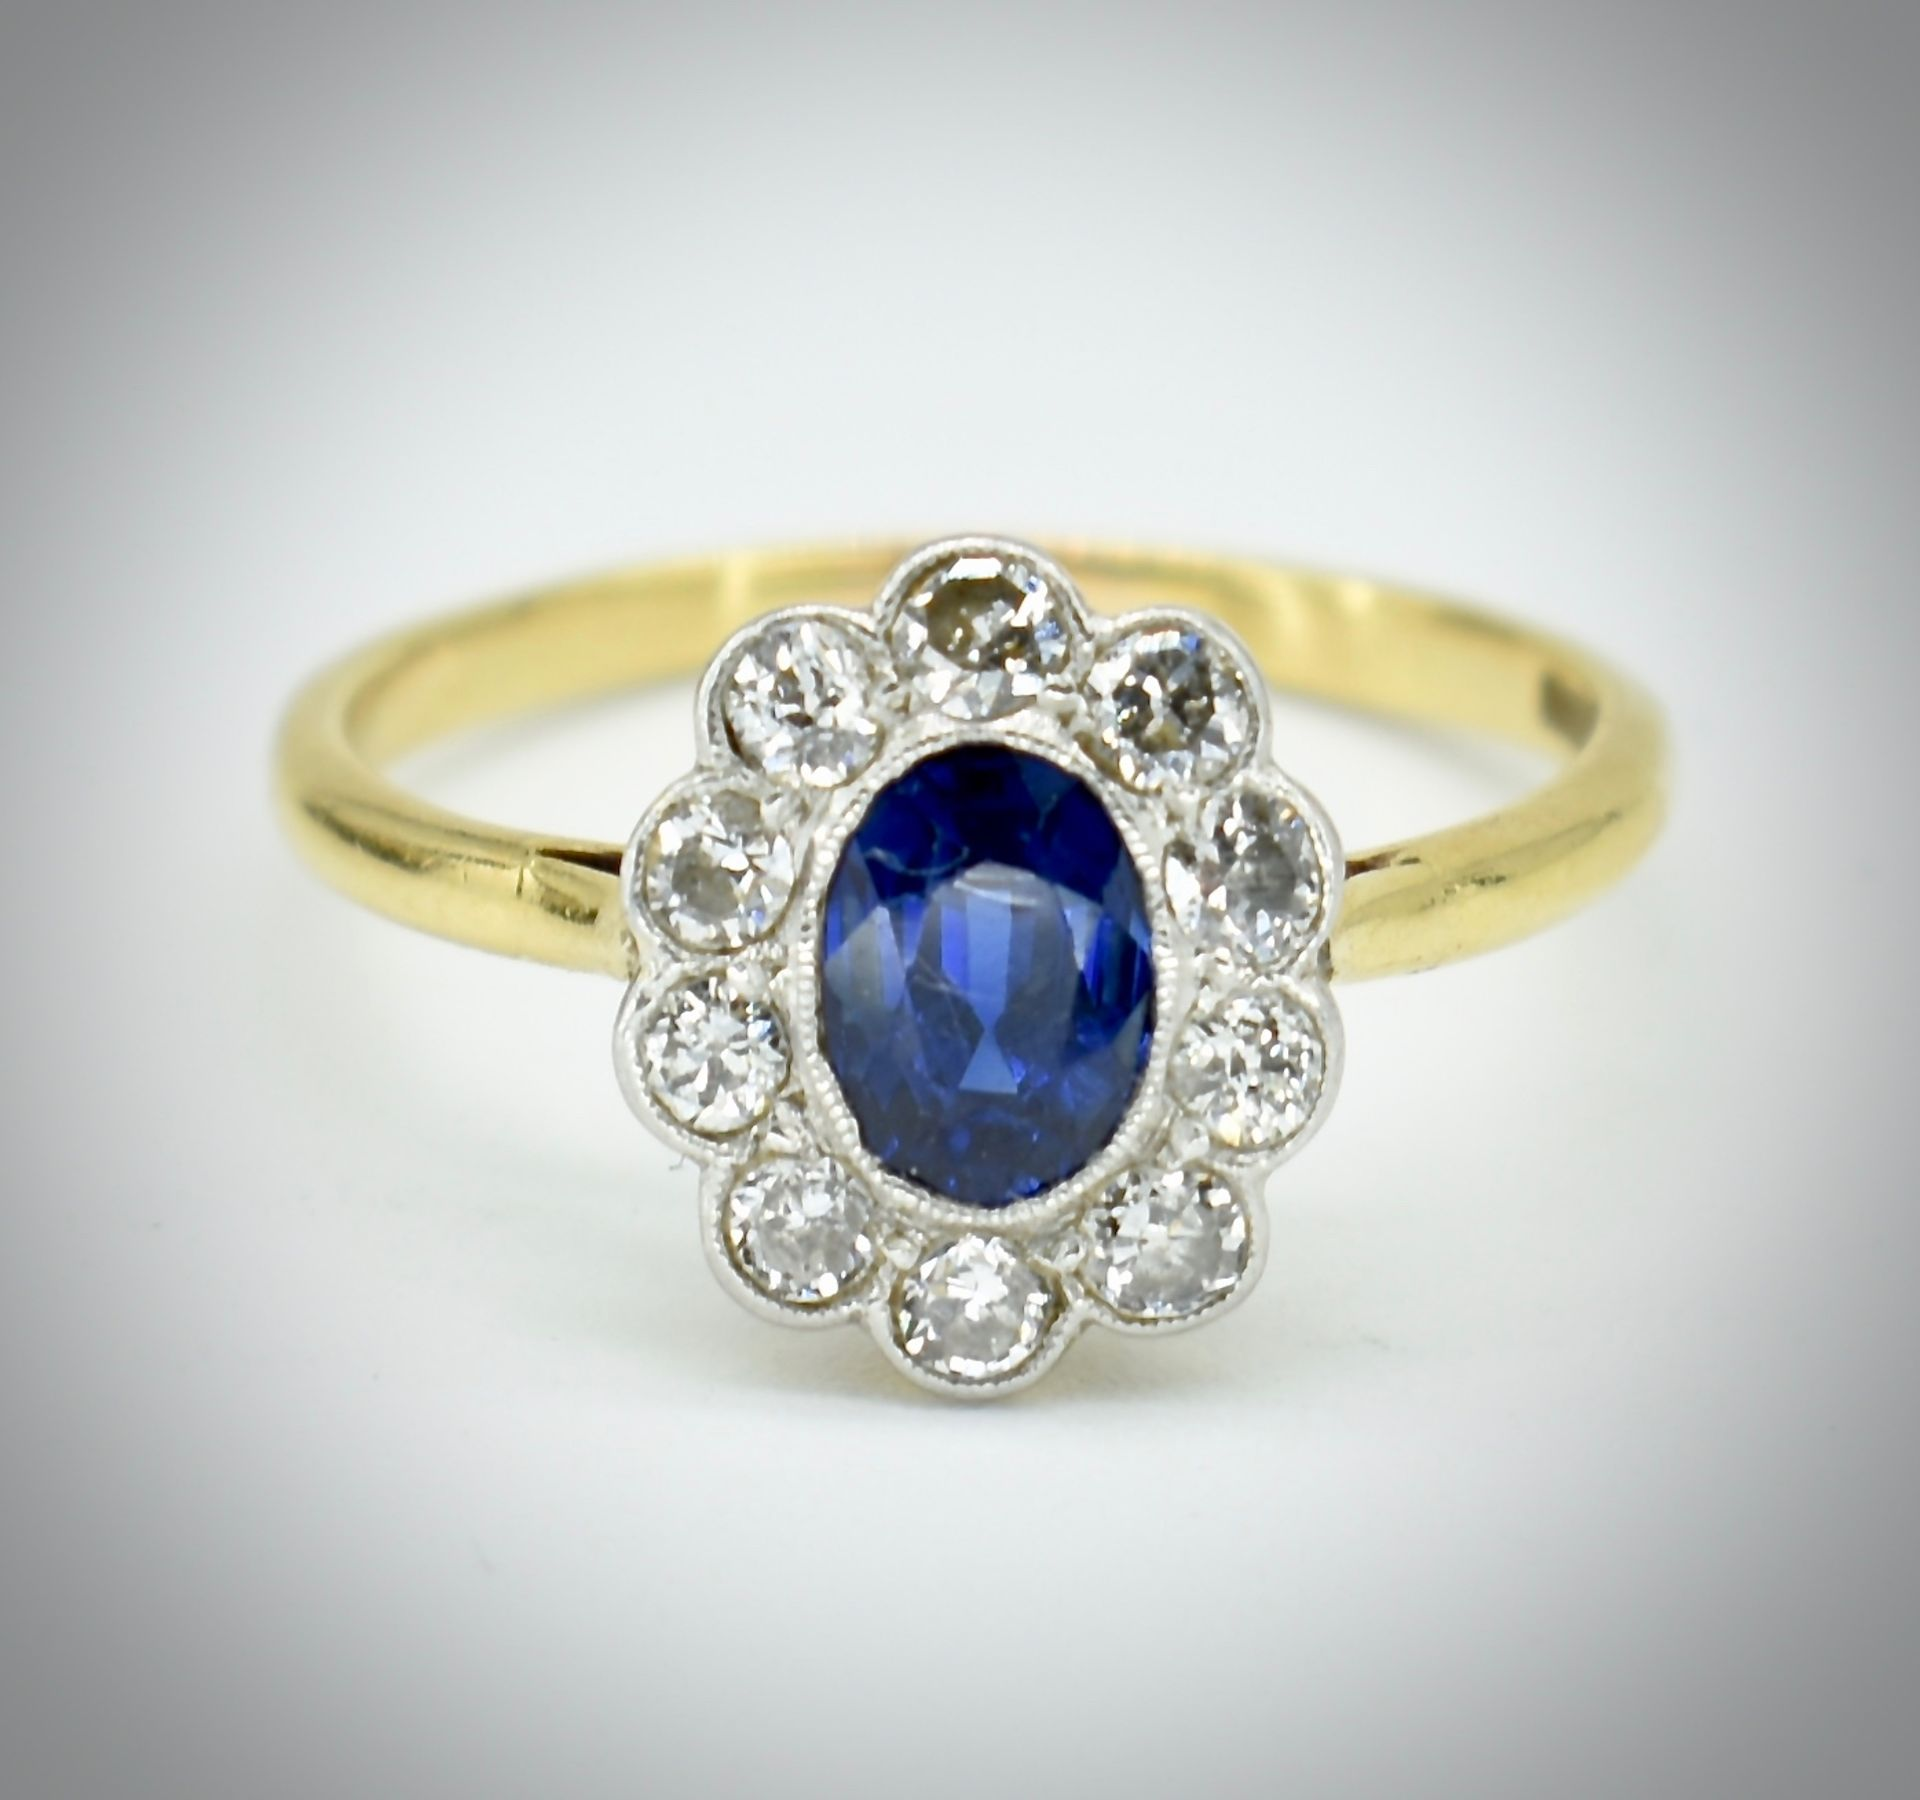 18ct Gold Sapphire & Diamond Cluster Ring - Image 2 of 6